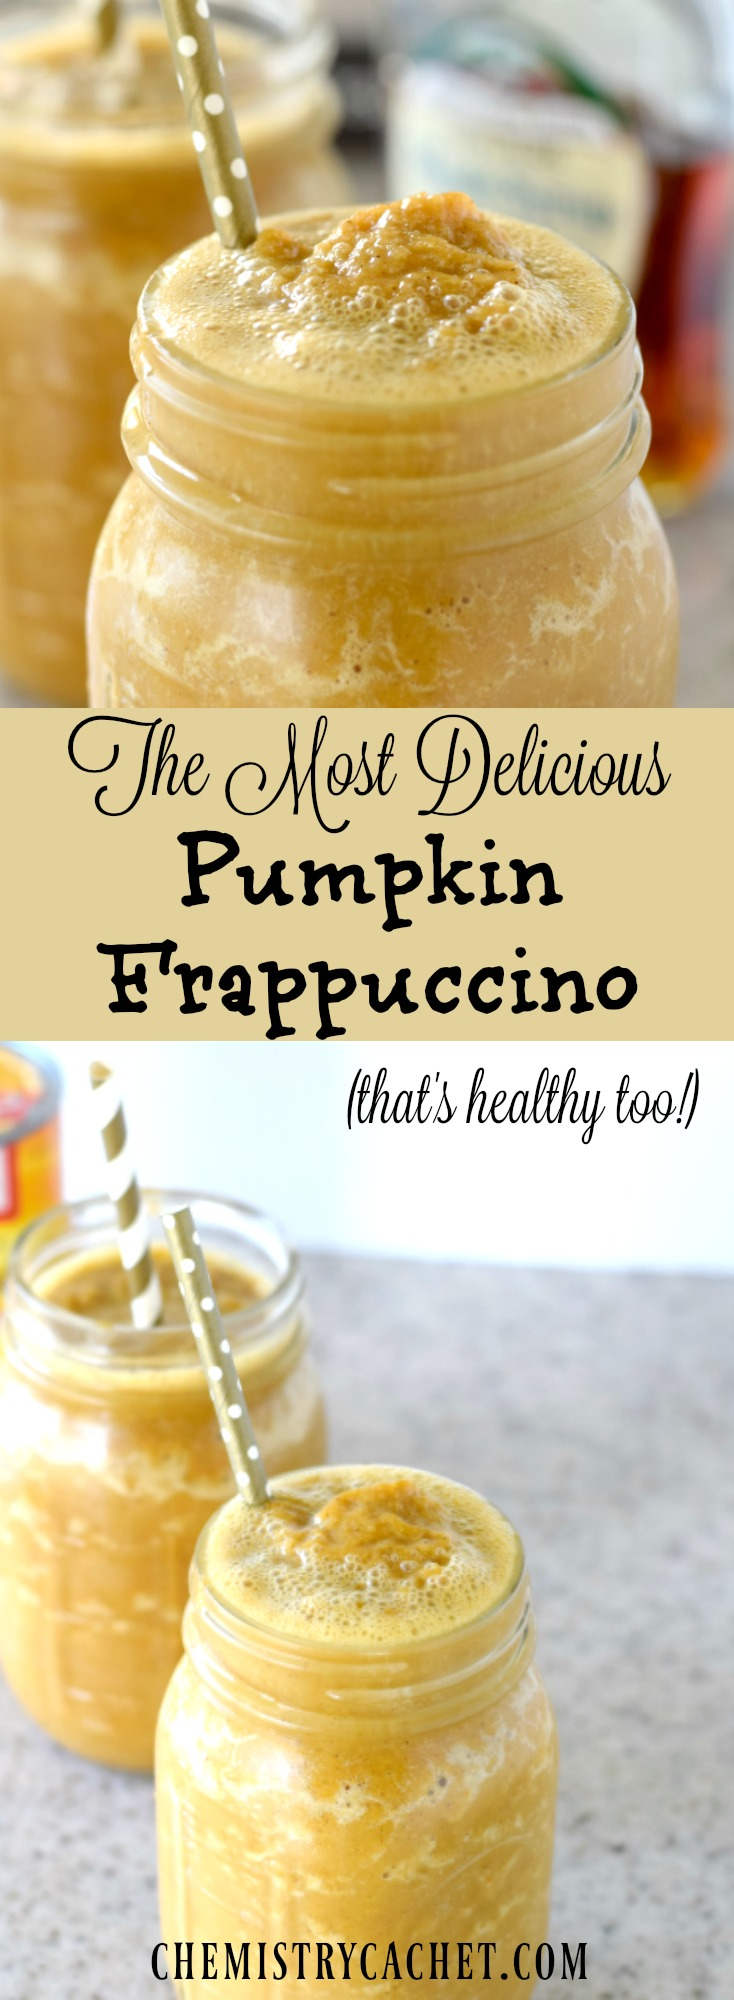 The MOST delicious pumpkin frappuccino that's healthy too! This pumpkin frappuccino recipe is the perfect at home treat this fall! Pumpkin frappuccino recipe on chemistrycachet.com